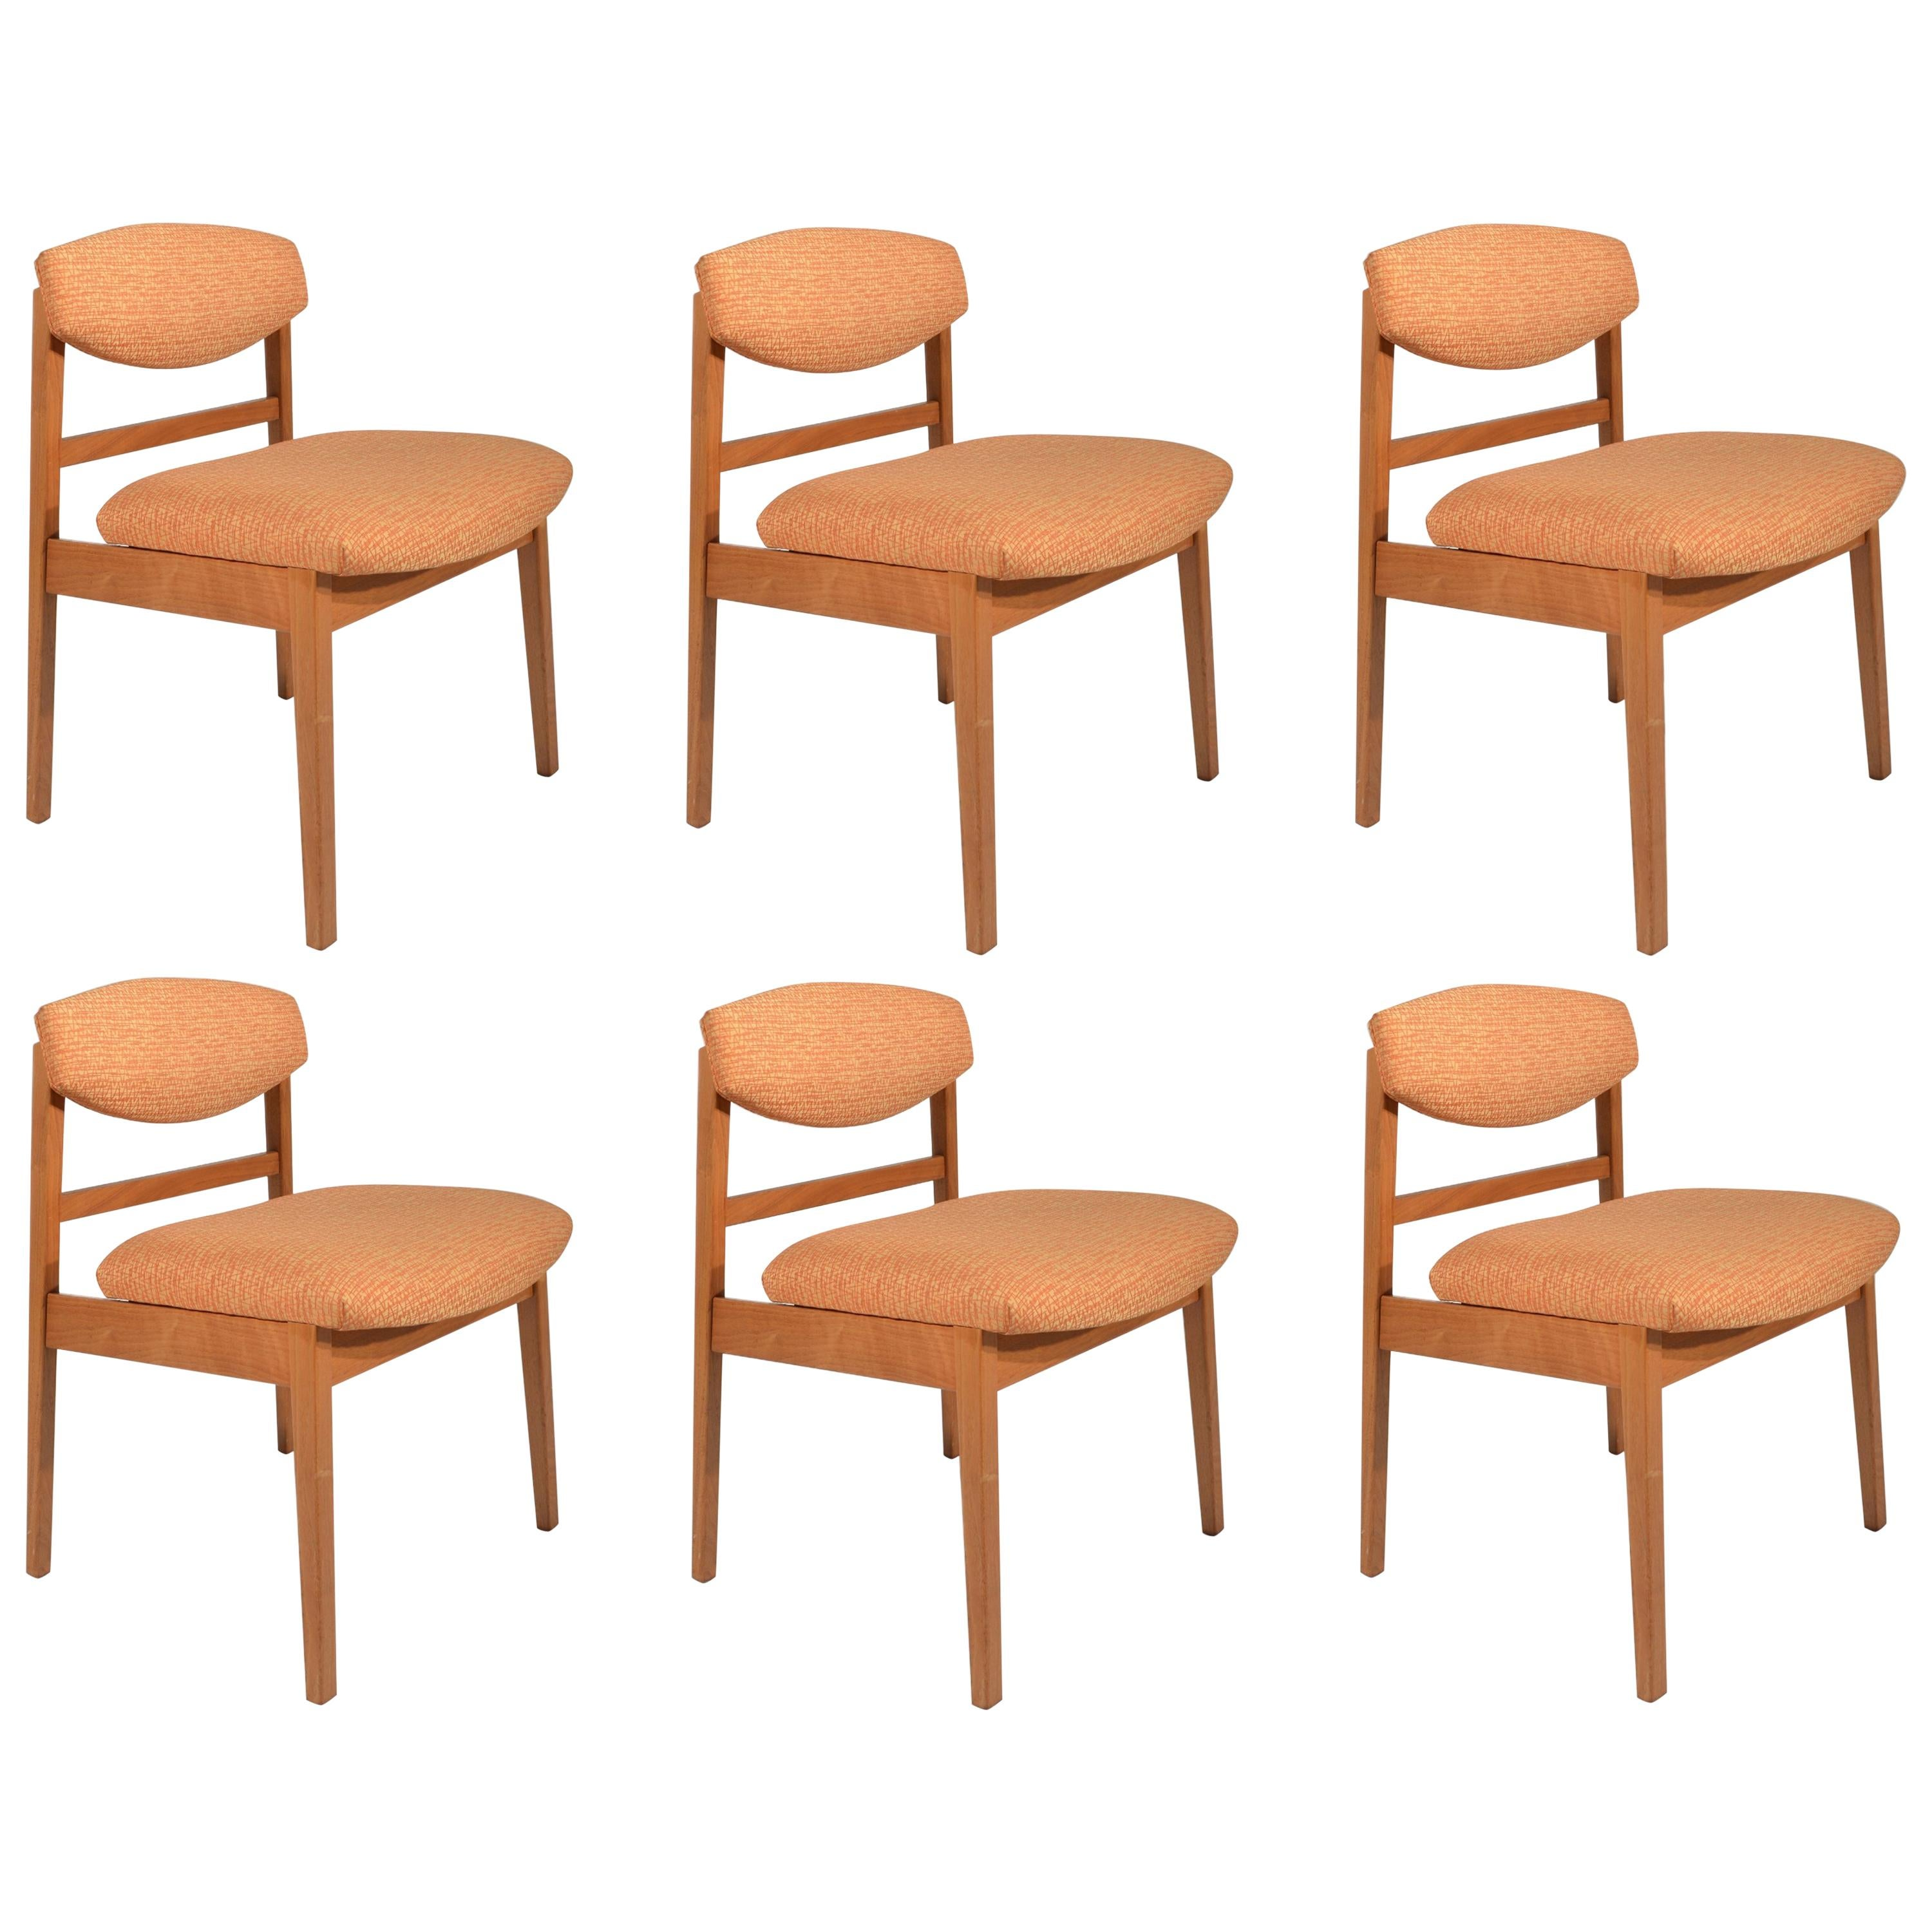 Set of Six George Nelson for Herman Miller Teak Dining Chairs